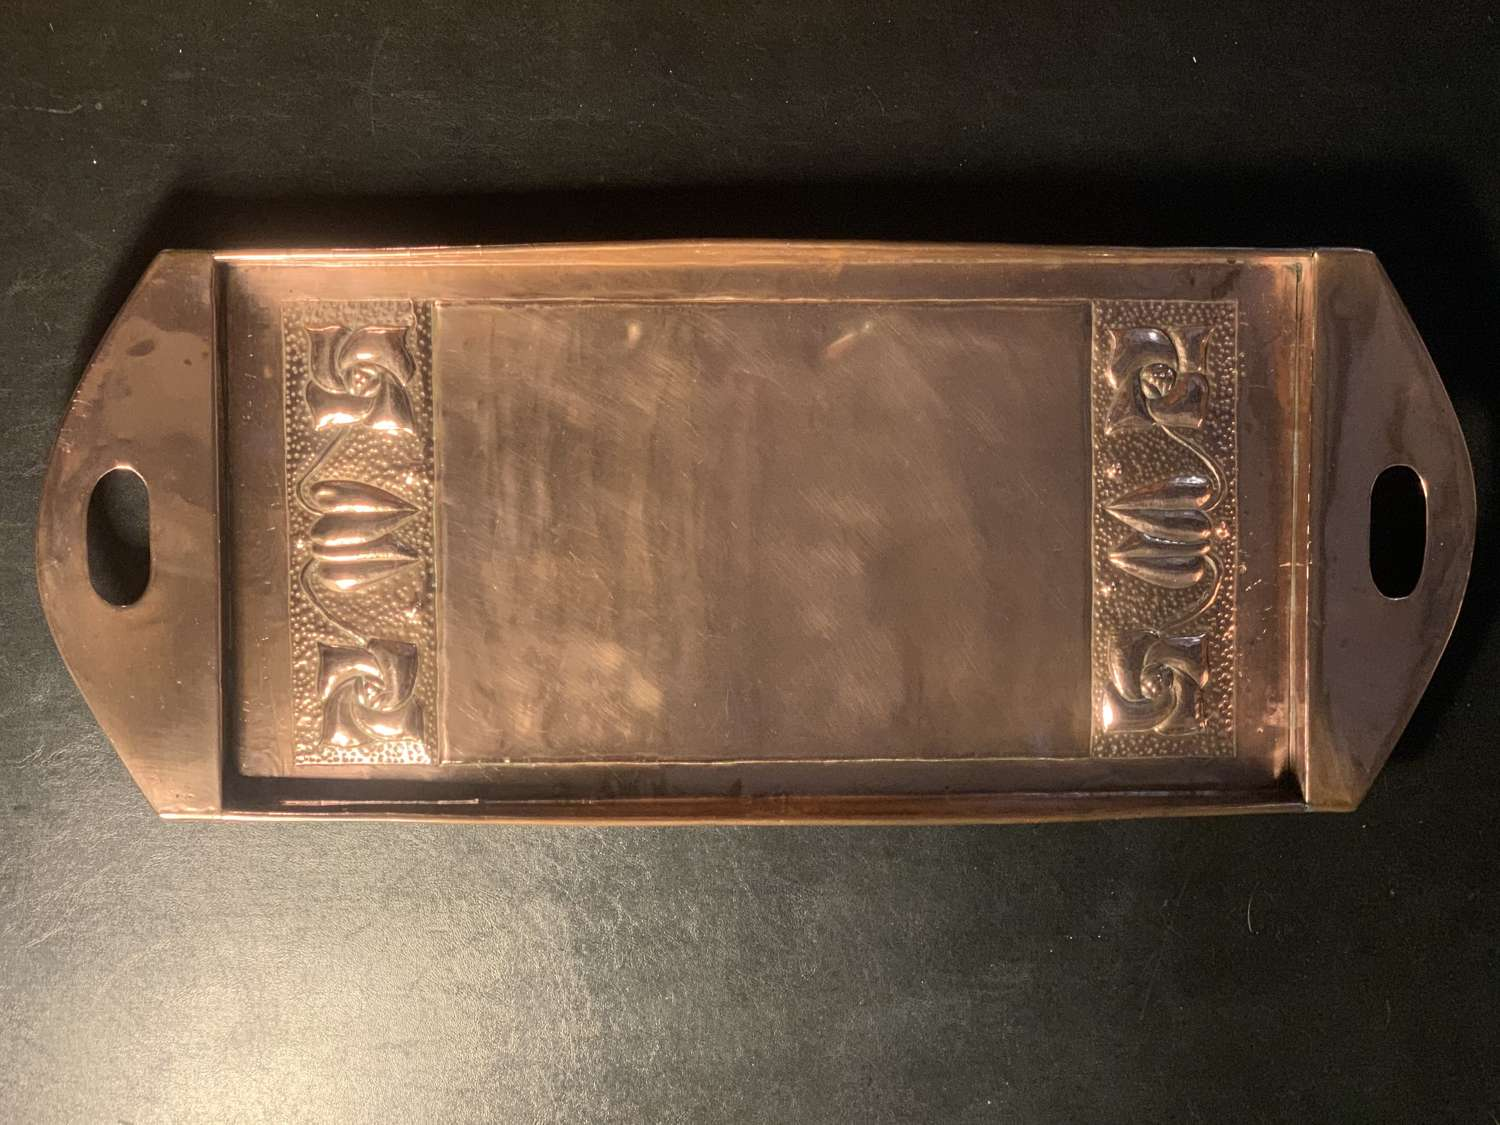 Arts & Crafts / Art Nouveau Scottish school copper tray c.1900.